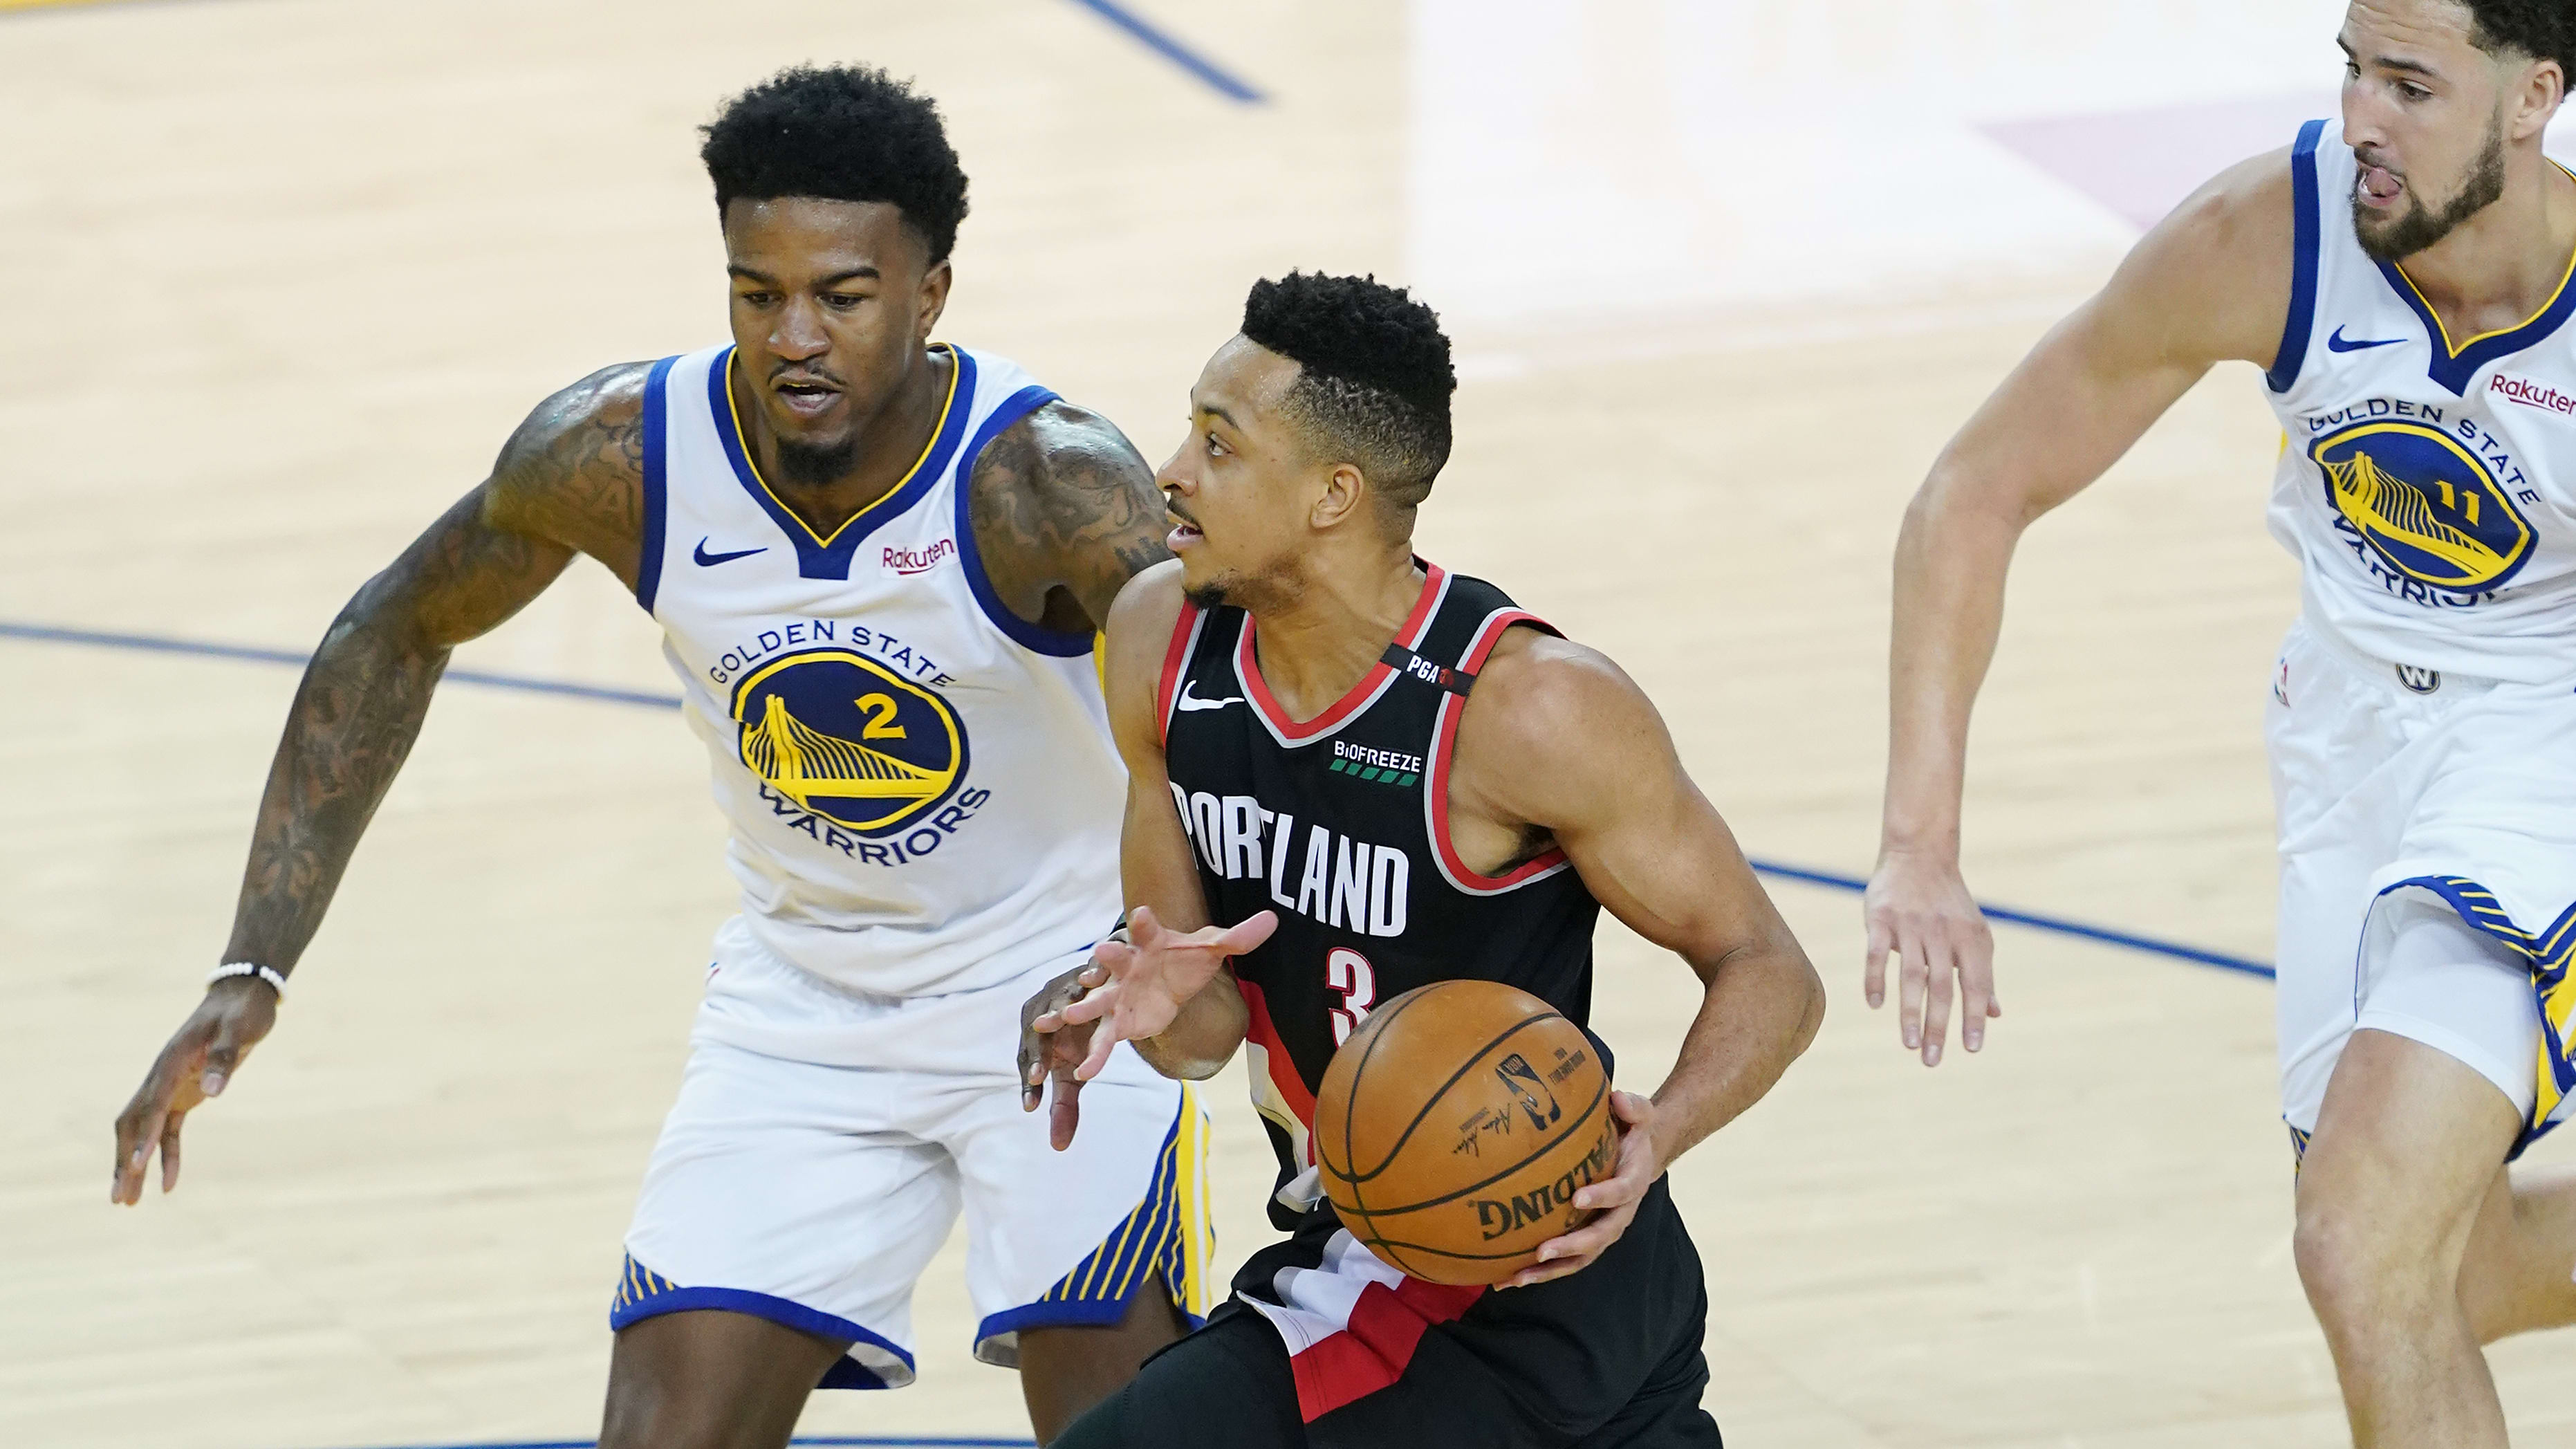 OAKLAND, CALIFORNIA - MAY 14: CJ McCollum #3 of the Portland Trail Blazers drives to the basket during the first half against the Golden State Warriors in game one of the NBA Western Conference Finals at ORACLE Arena on May 14, 2019 in Oakland, California. NOTE TO USER: User expressly acknowledges and agrees that, by downloading and or using this photograph, User is consenting to the terms and conditions of the Getty Images License Agreement. (Photo by Thearon W. Henderson/Getty Images)